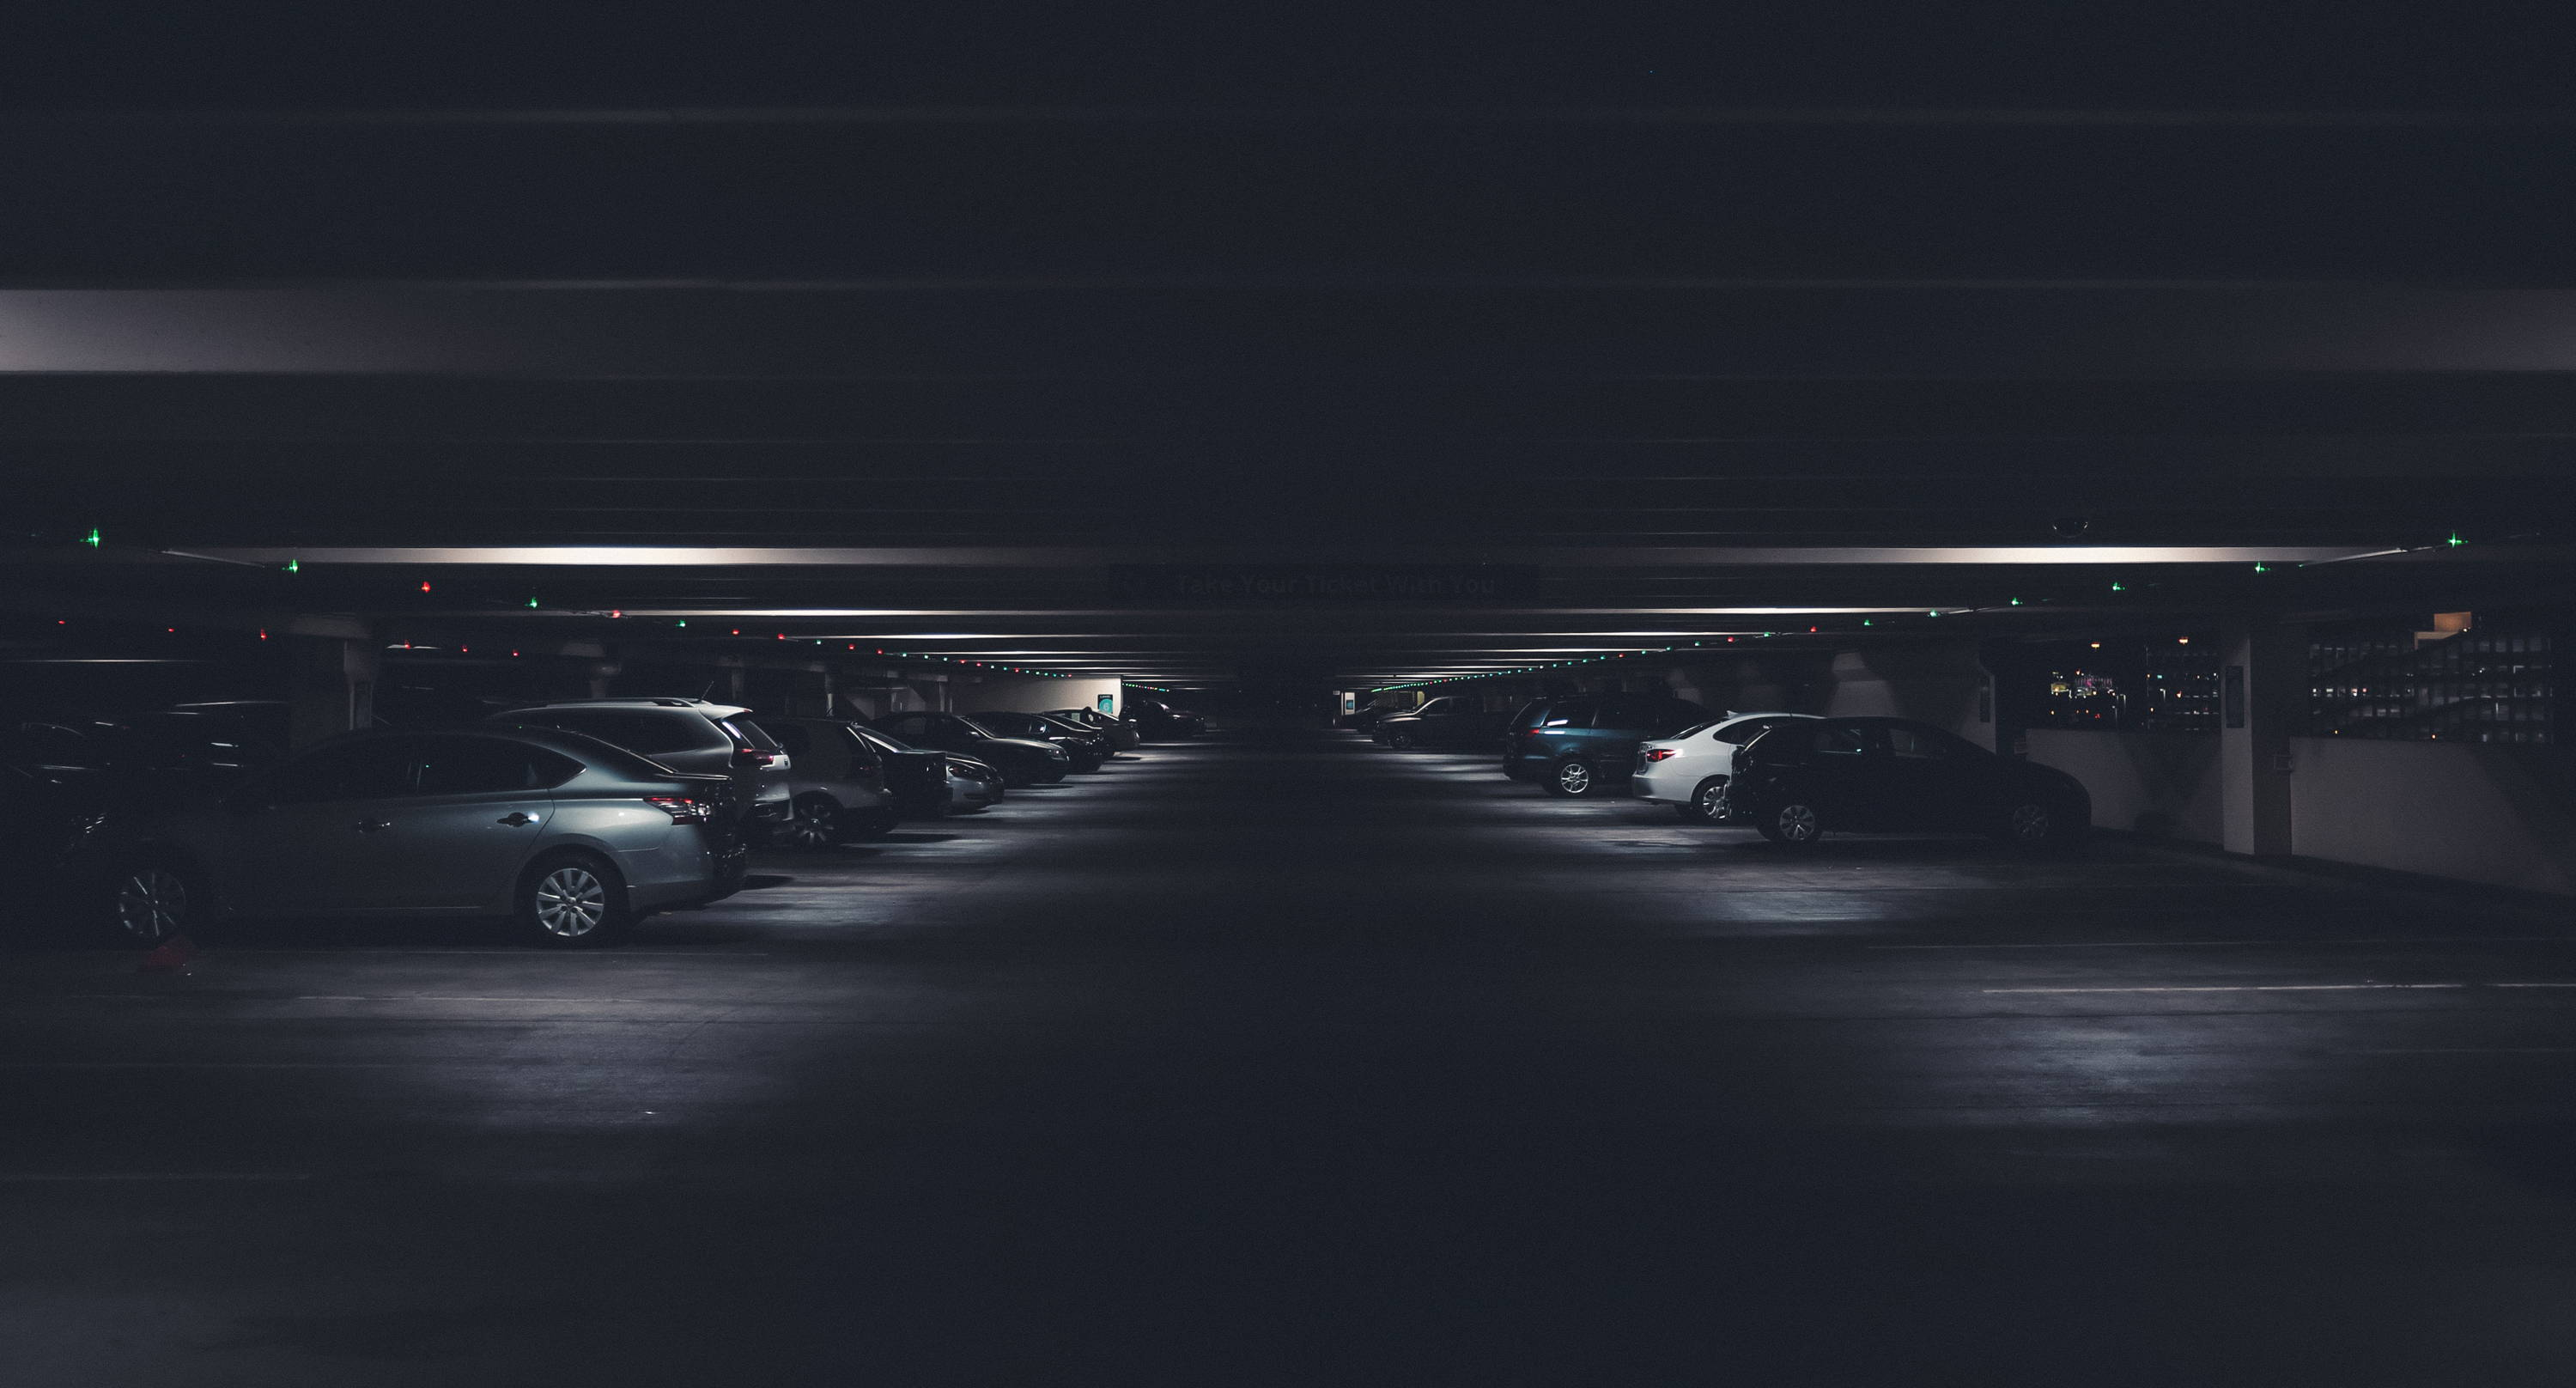 A series of cars parked in a dark underground parking lot.